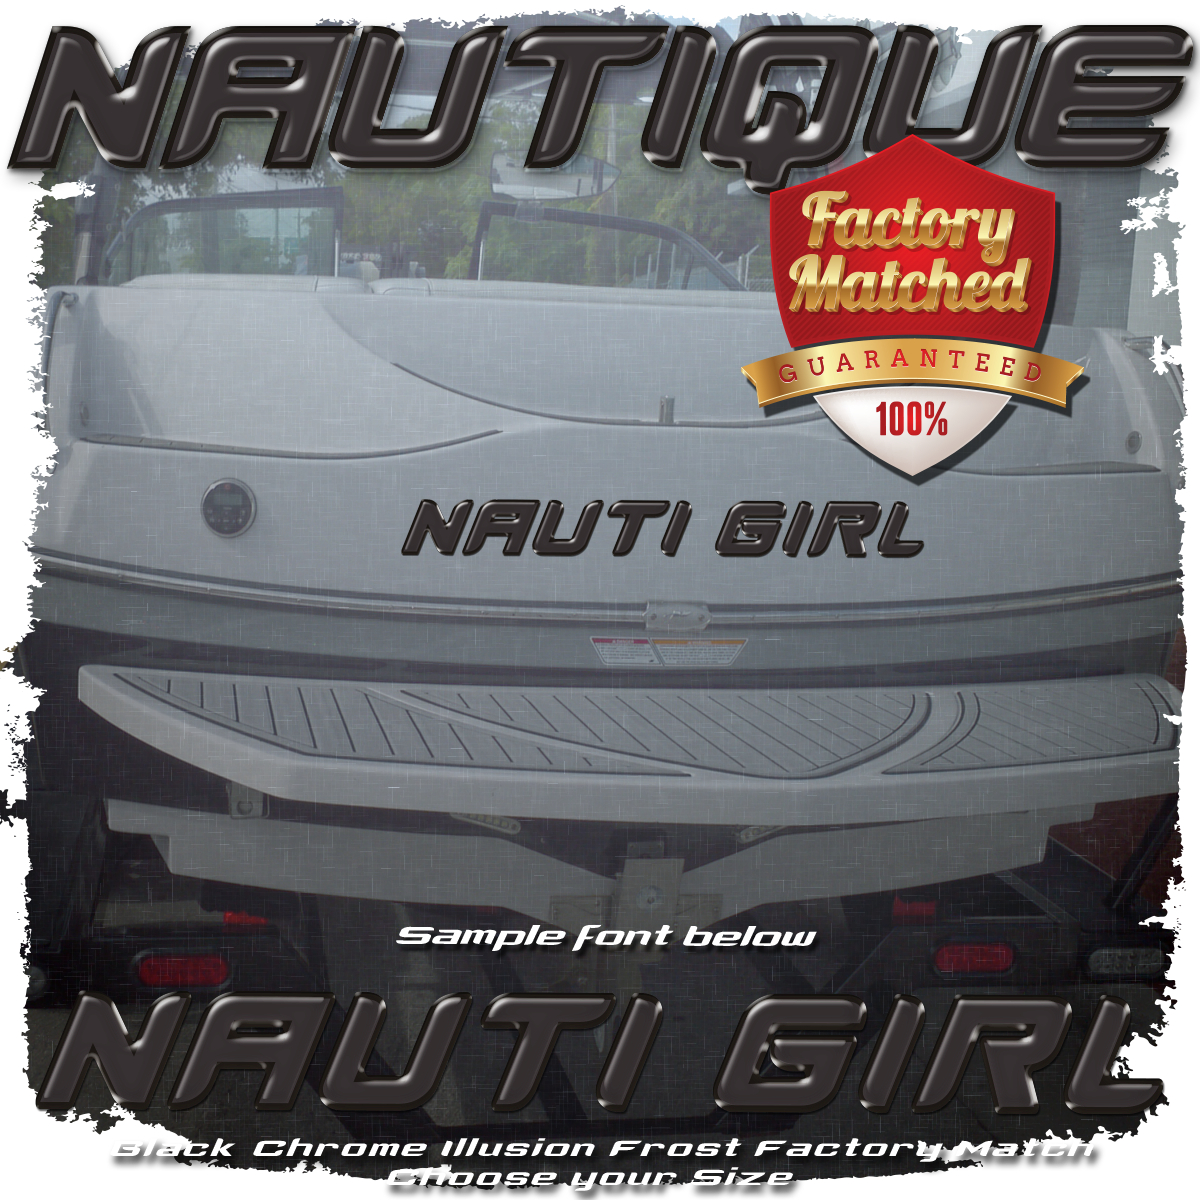 Domed Boat Name in the Nautique Font, Factory Matched Black Chrome Illusion Frost